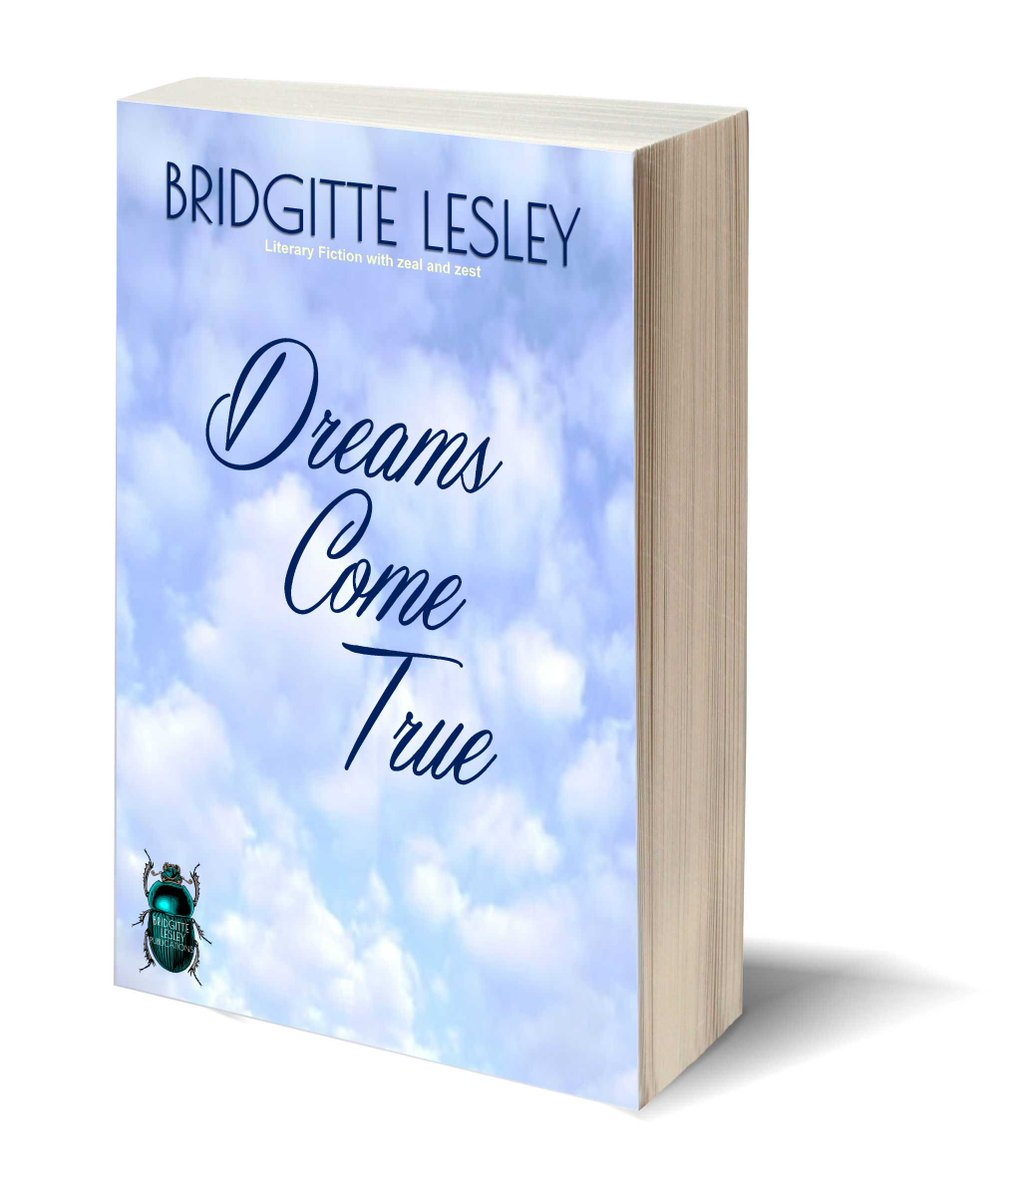 """★DREAMS COME TRUE★ The extravaganza was about to begin! http://amazon.com/gp/product/B00JH8M38I/…   """"@BridgitteLesley  #ASMSG  #booklove pic.twitter.com/mQ1V0VYEMJ"""